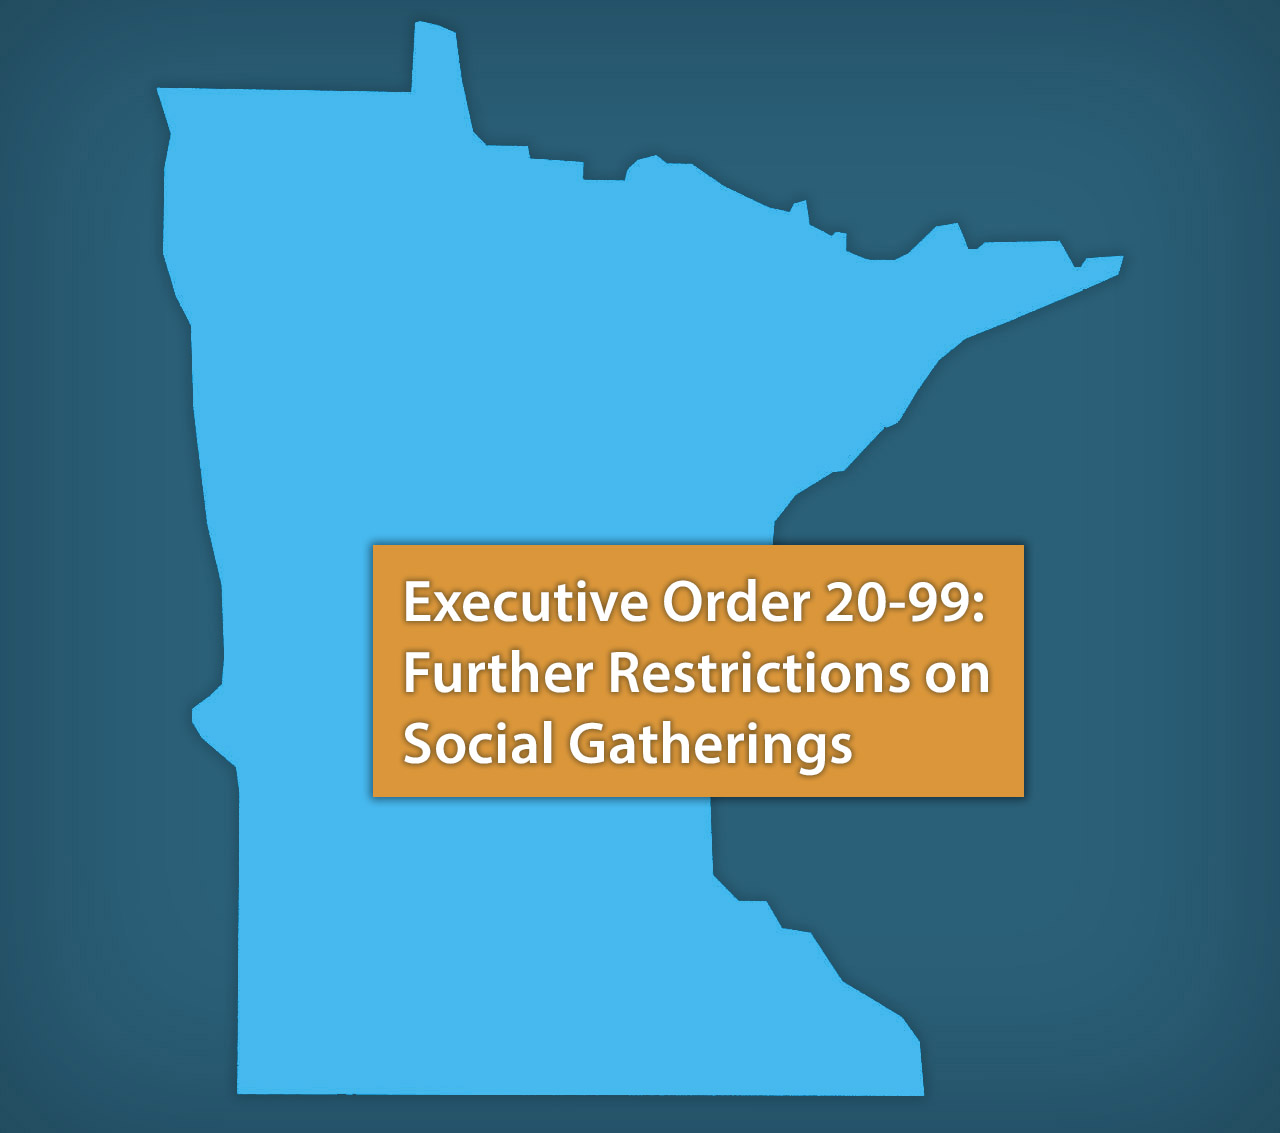 Executive Order 20-99 Placing Further Restrictions on Social Gatherings